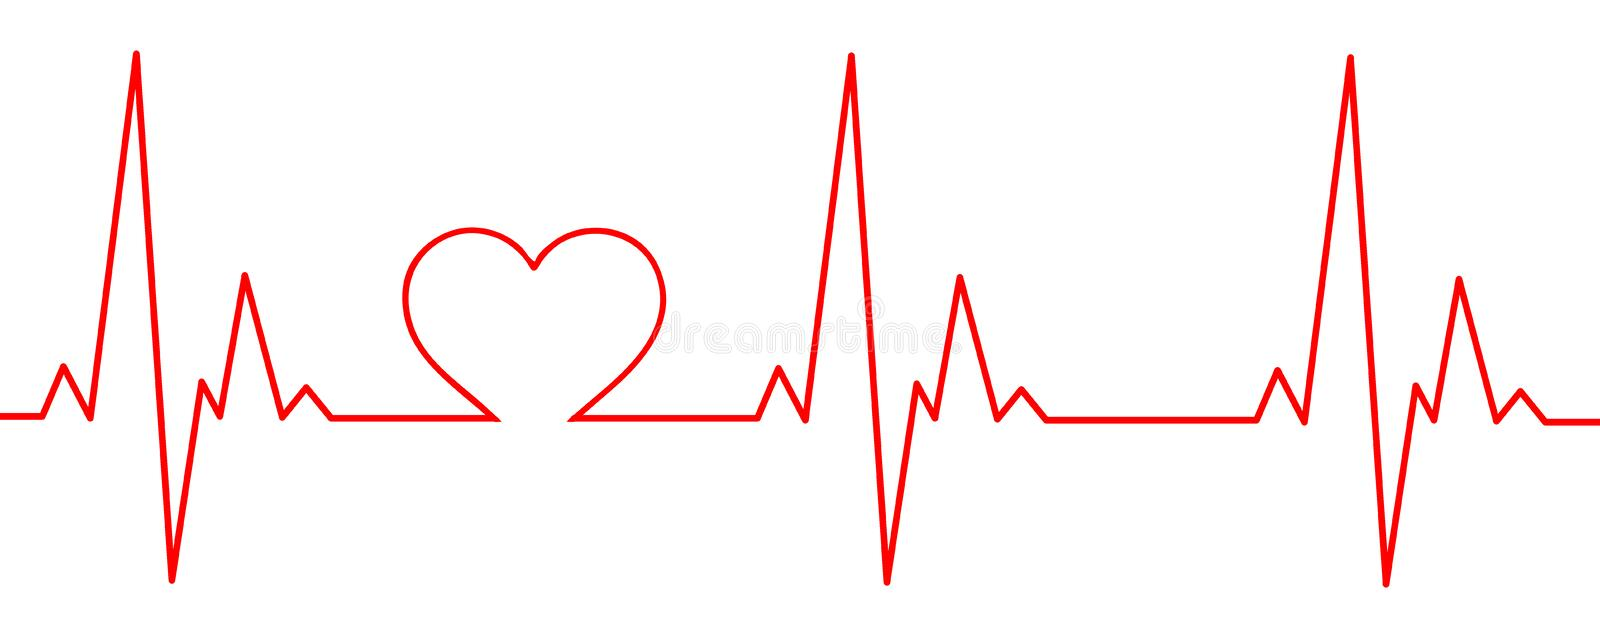 A red heartbeat with a heart in the graph. A Heartbeat graph with an integrated heart. A cardiogram showing love by incorporating a heart in the graph stock illustration